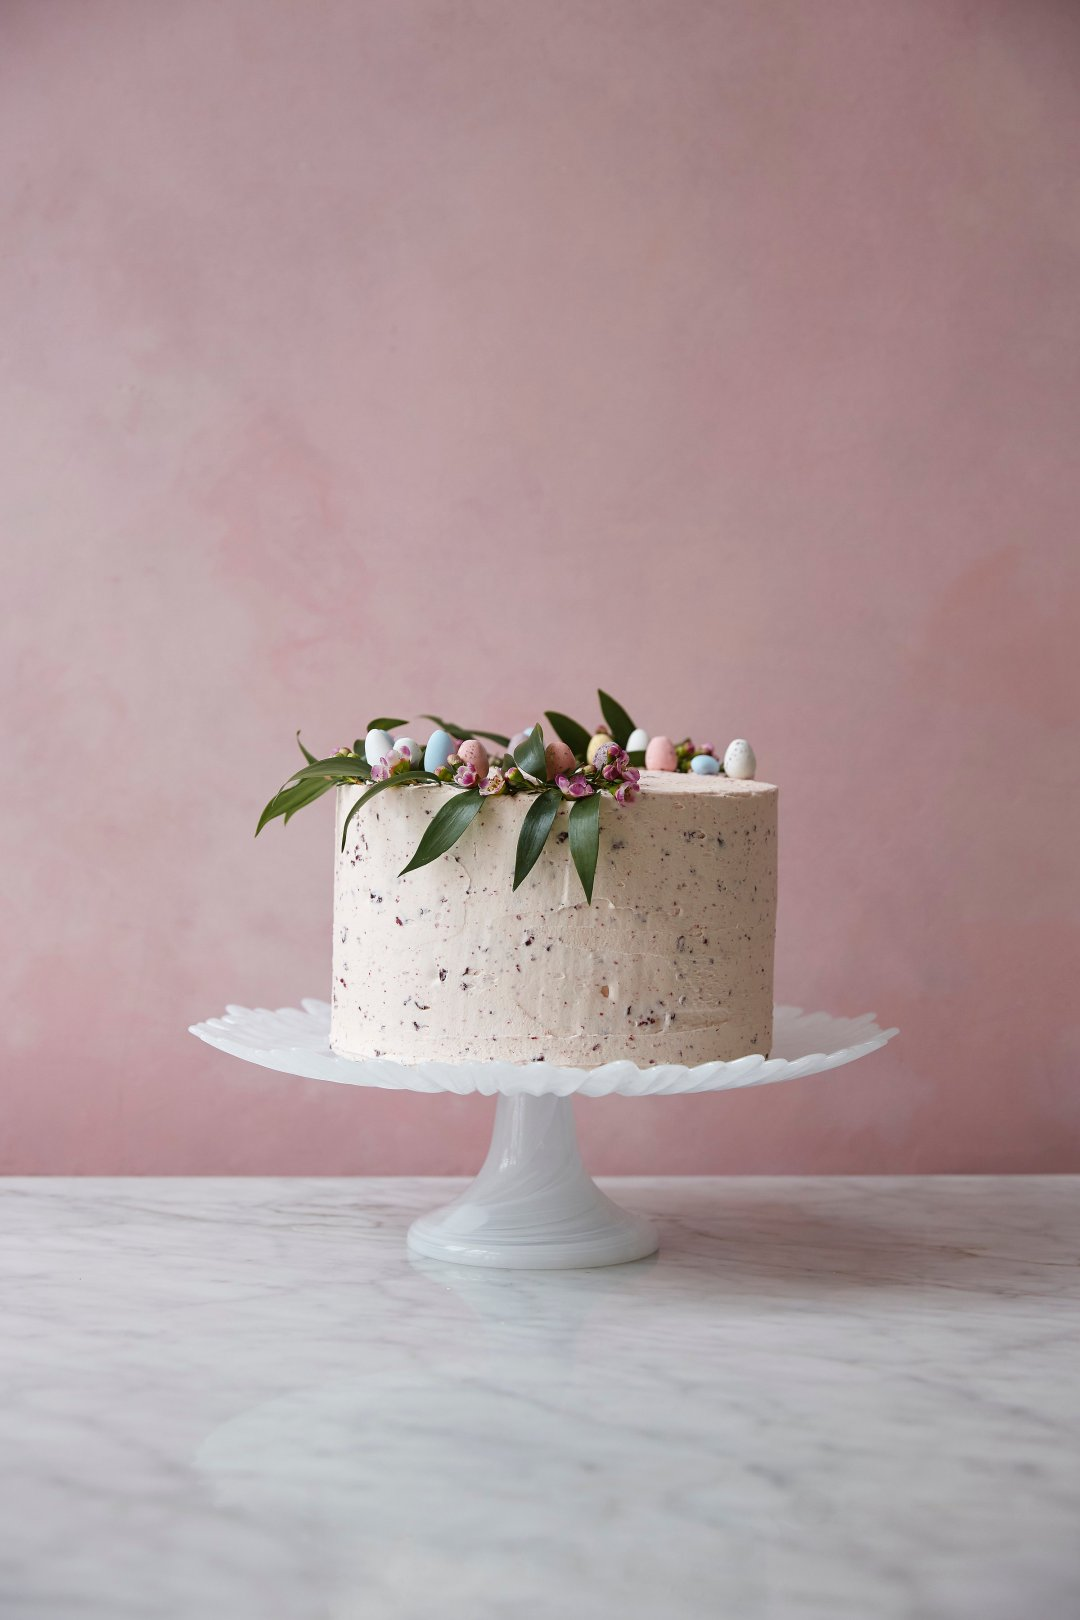 Baking With Lily Vanilli Easter Chocolate Cake Anthropologie Blog